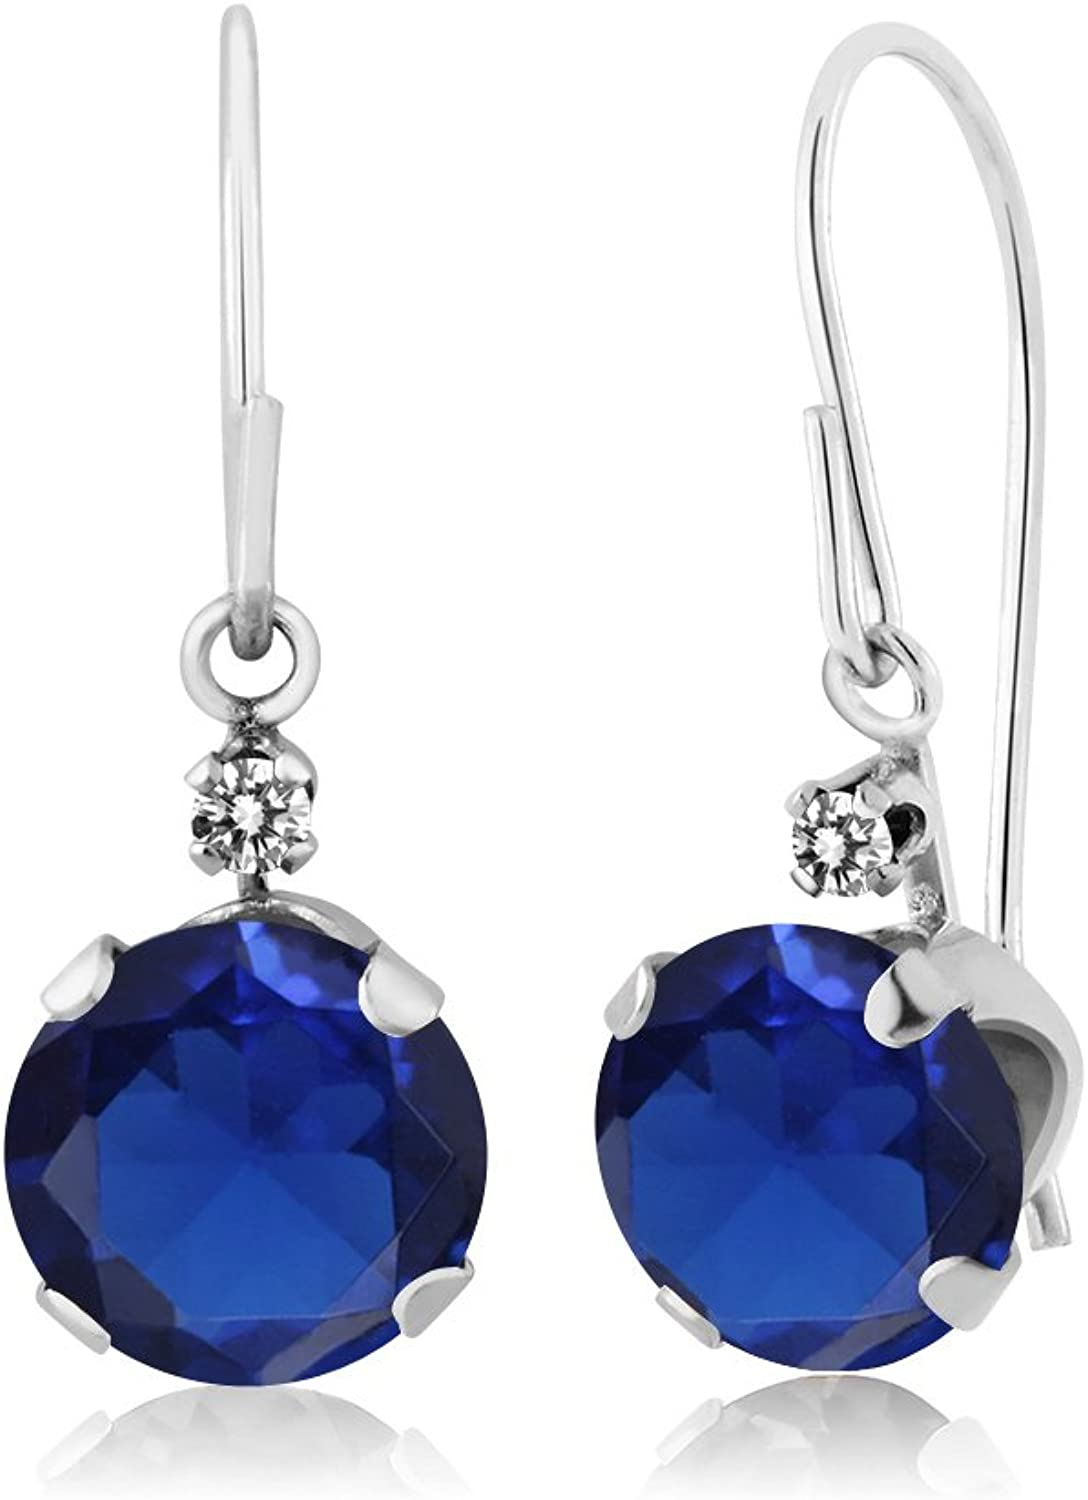 2.03 Ct Round bluee Simulated Sapphire White Diamond 14K White gold Earrings